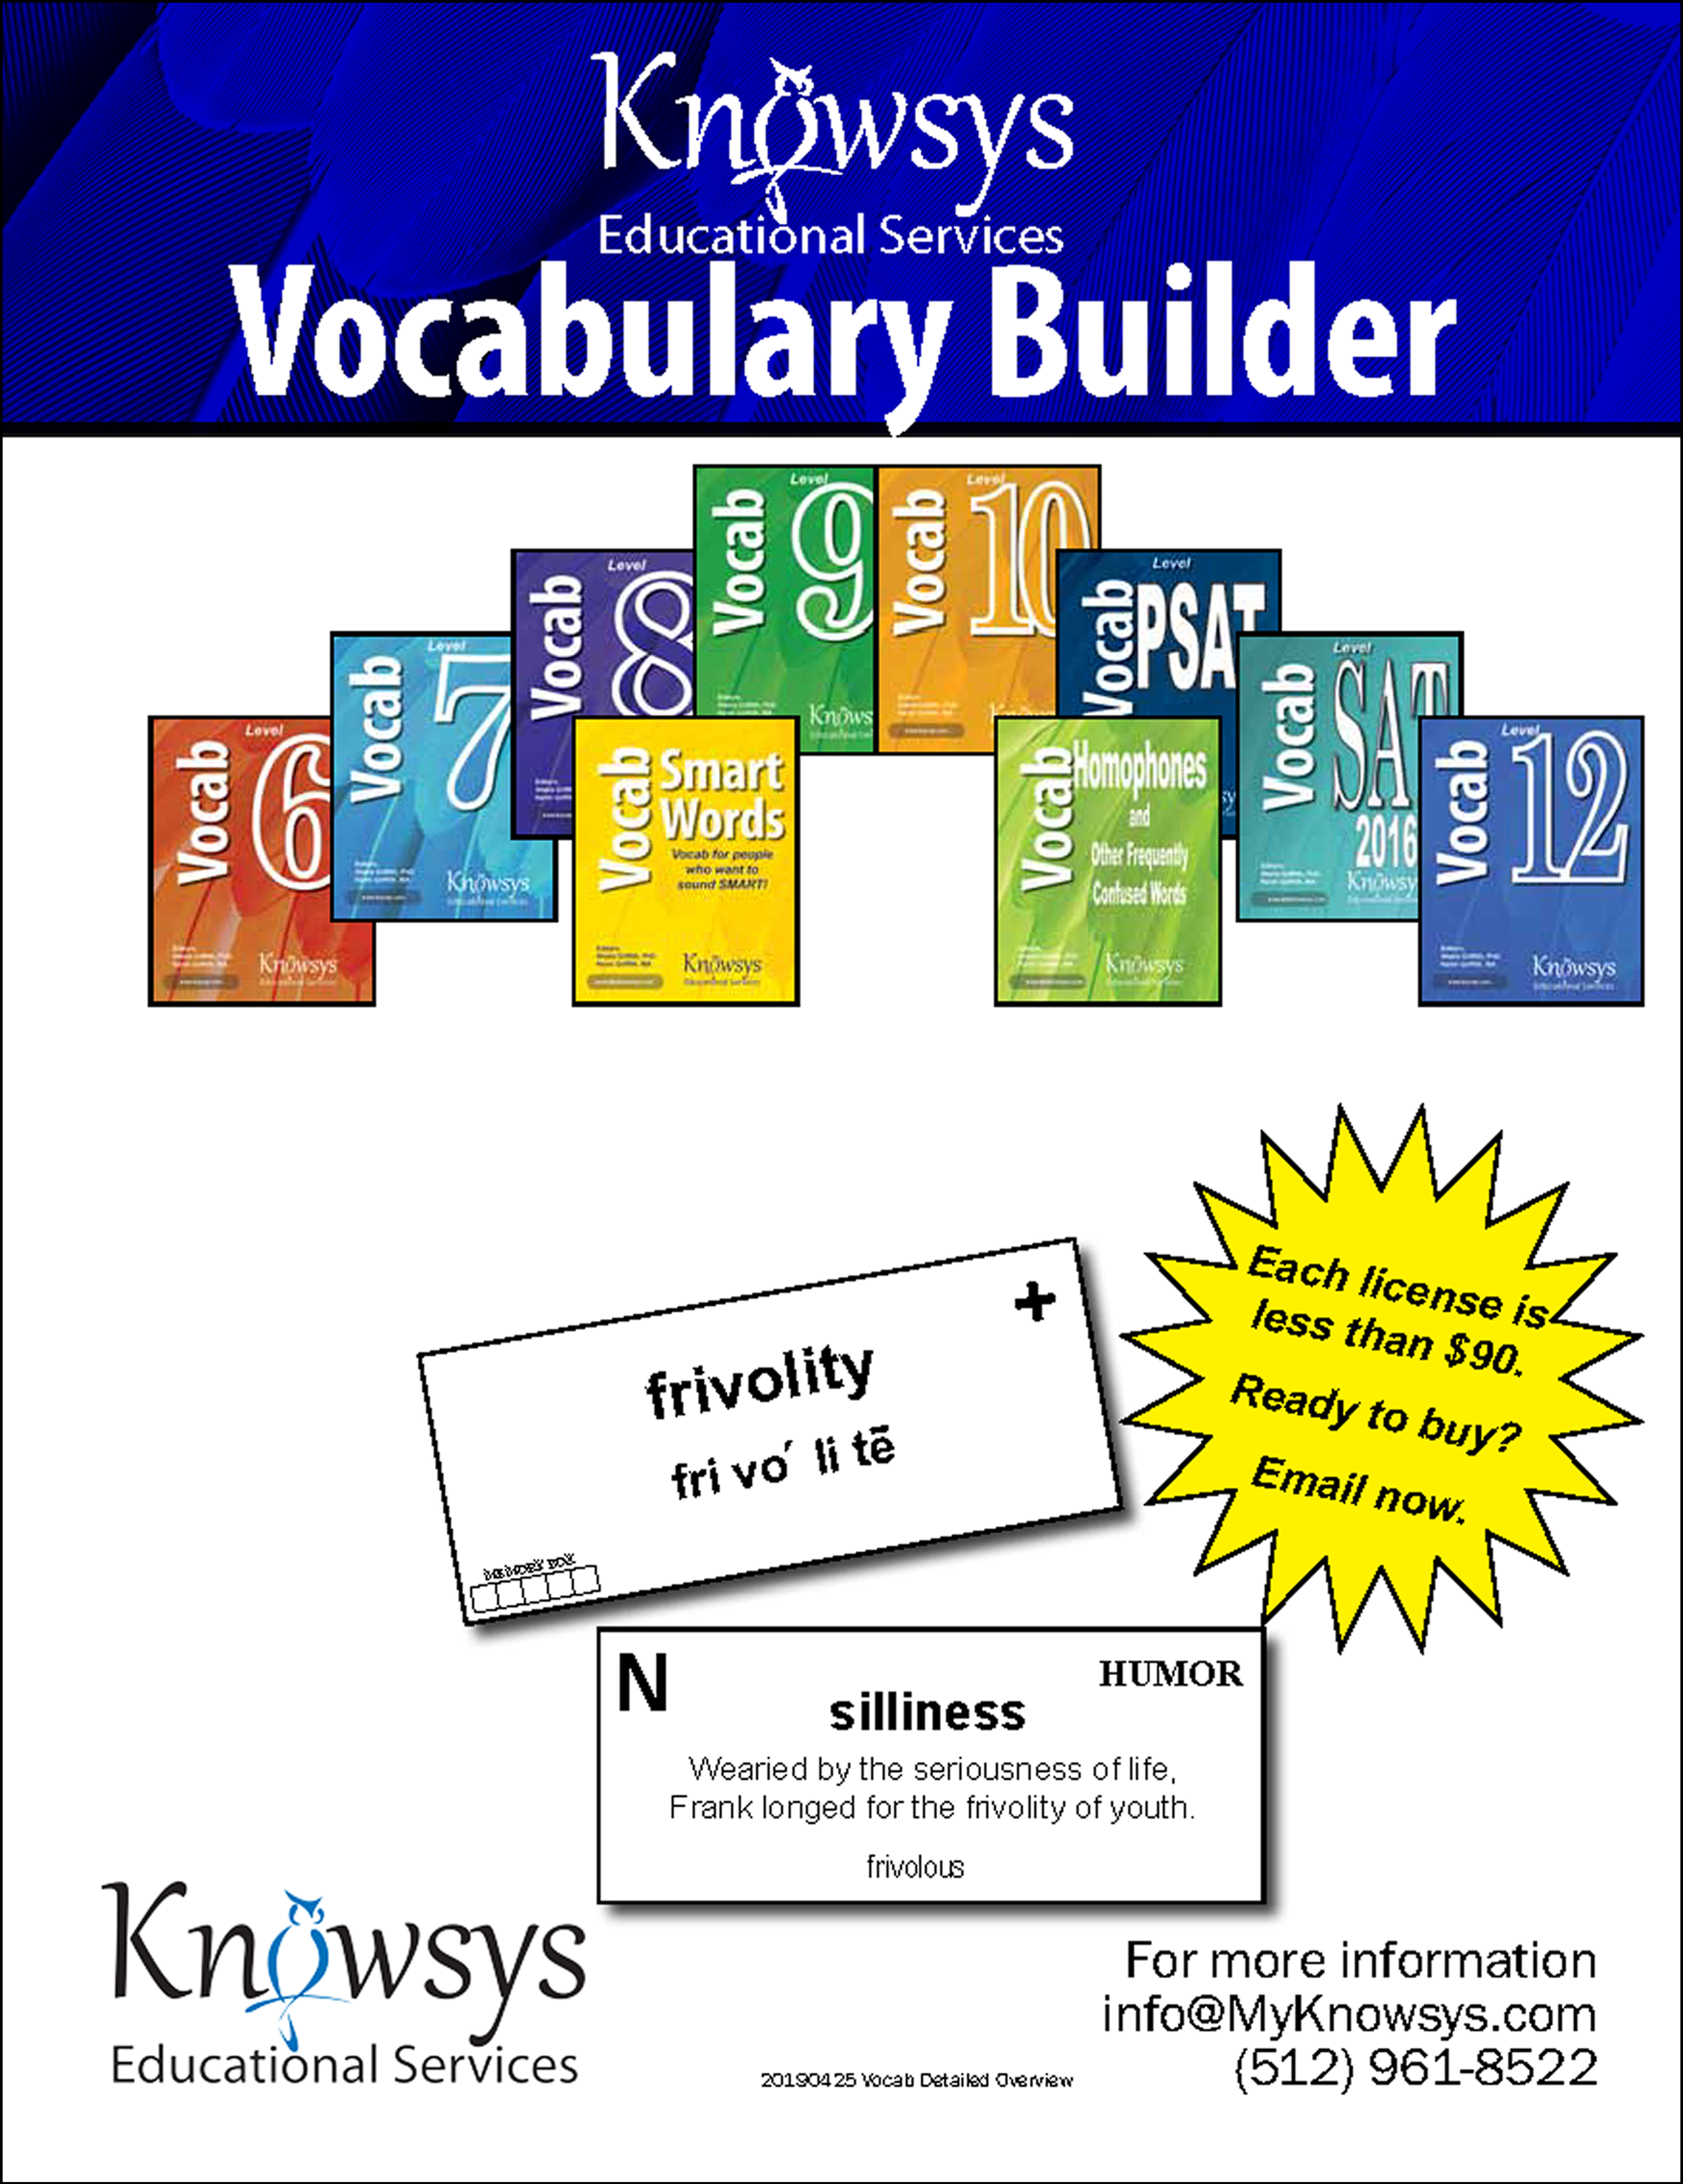 Vocab Builder Overview